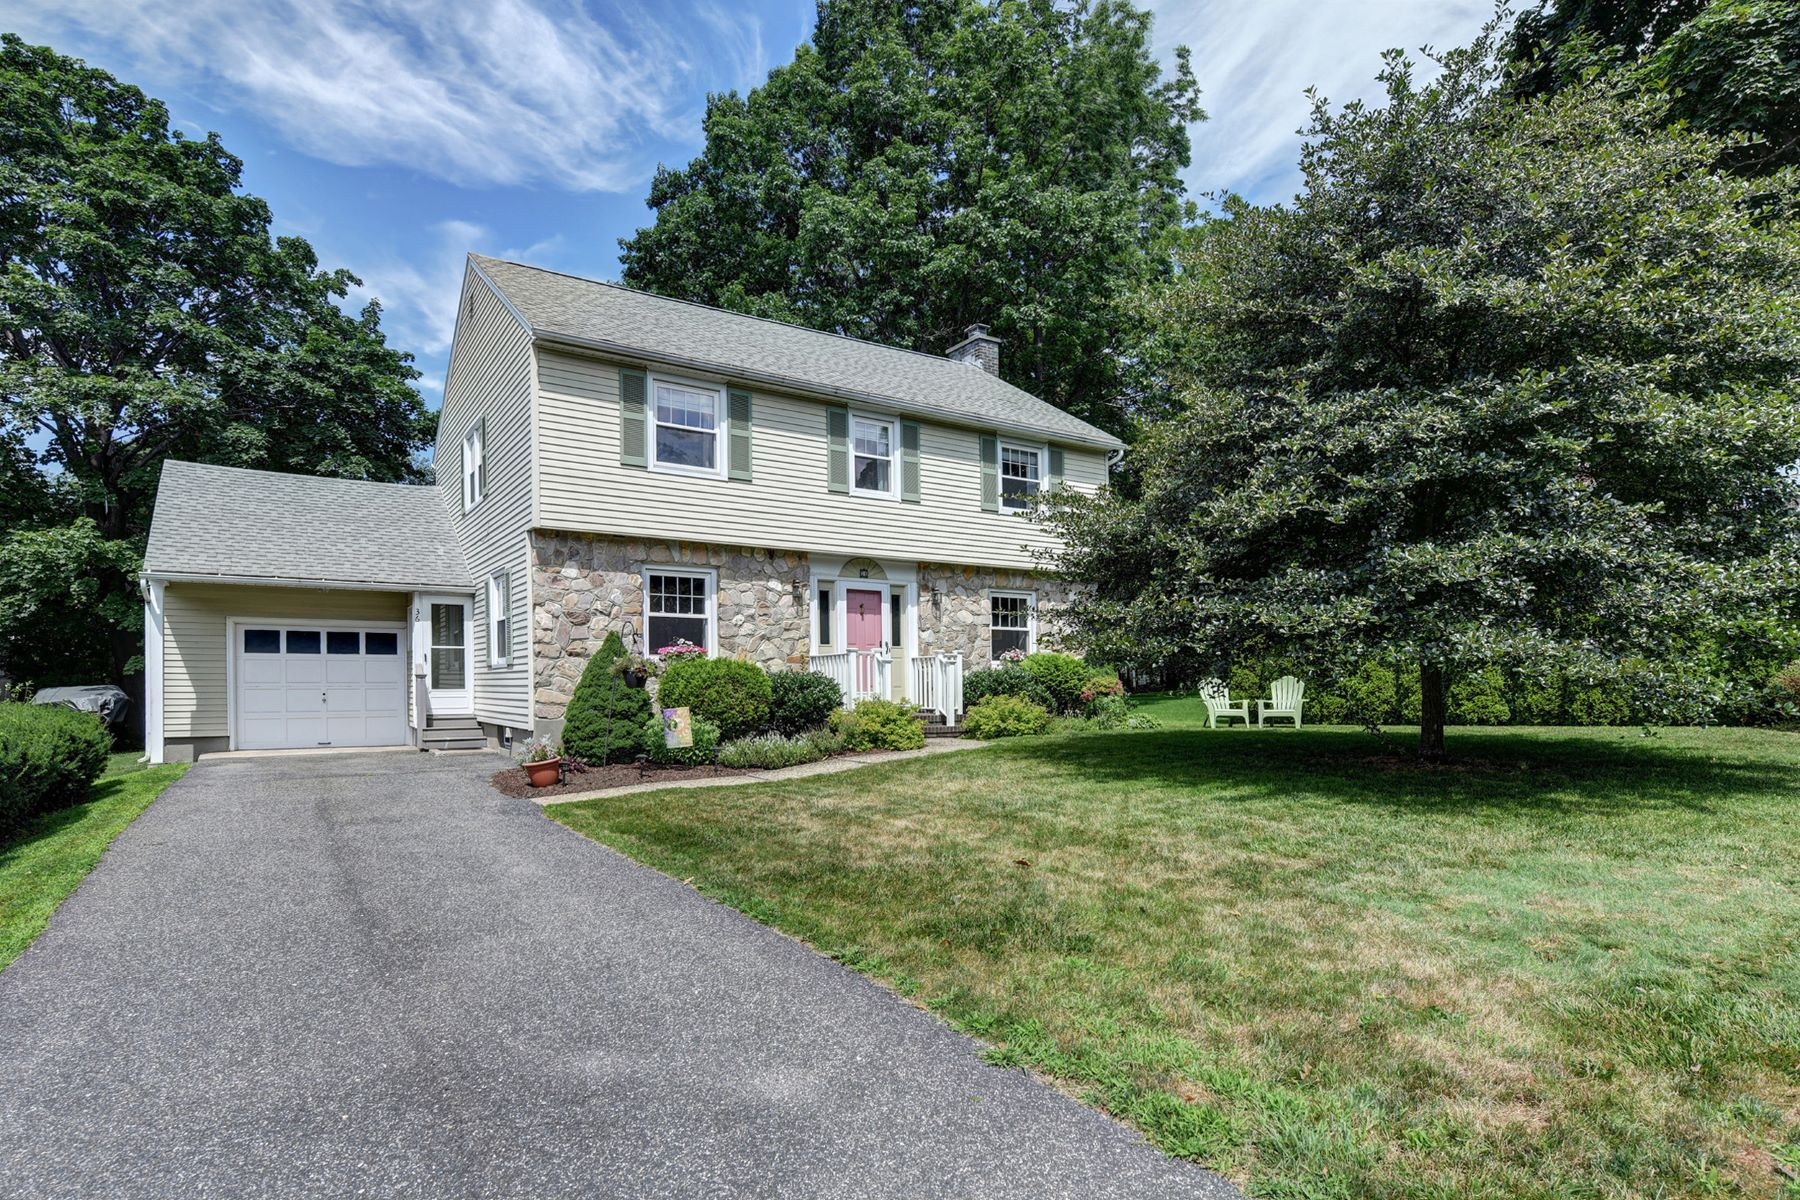 Single Family Homes for Active at Desirable Parkway Center Hall Colonial in Sought After Southeast Pittsfield 36 Concord Pkwy Pittsfield, Massachusetts 01201 United States